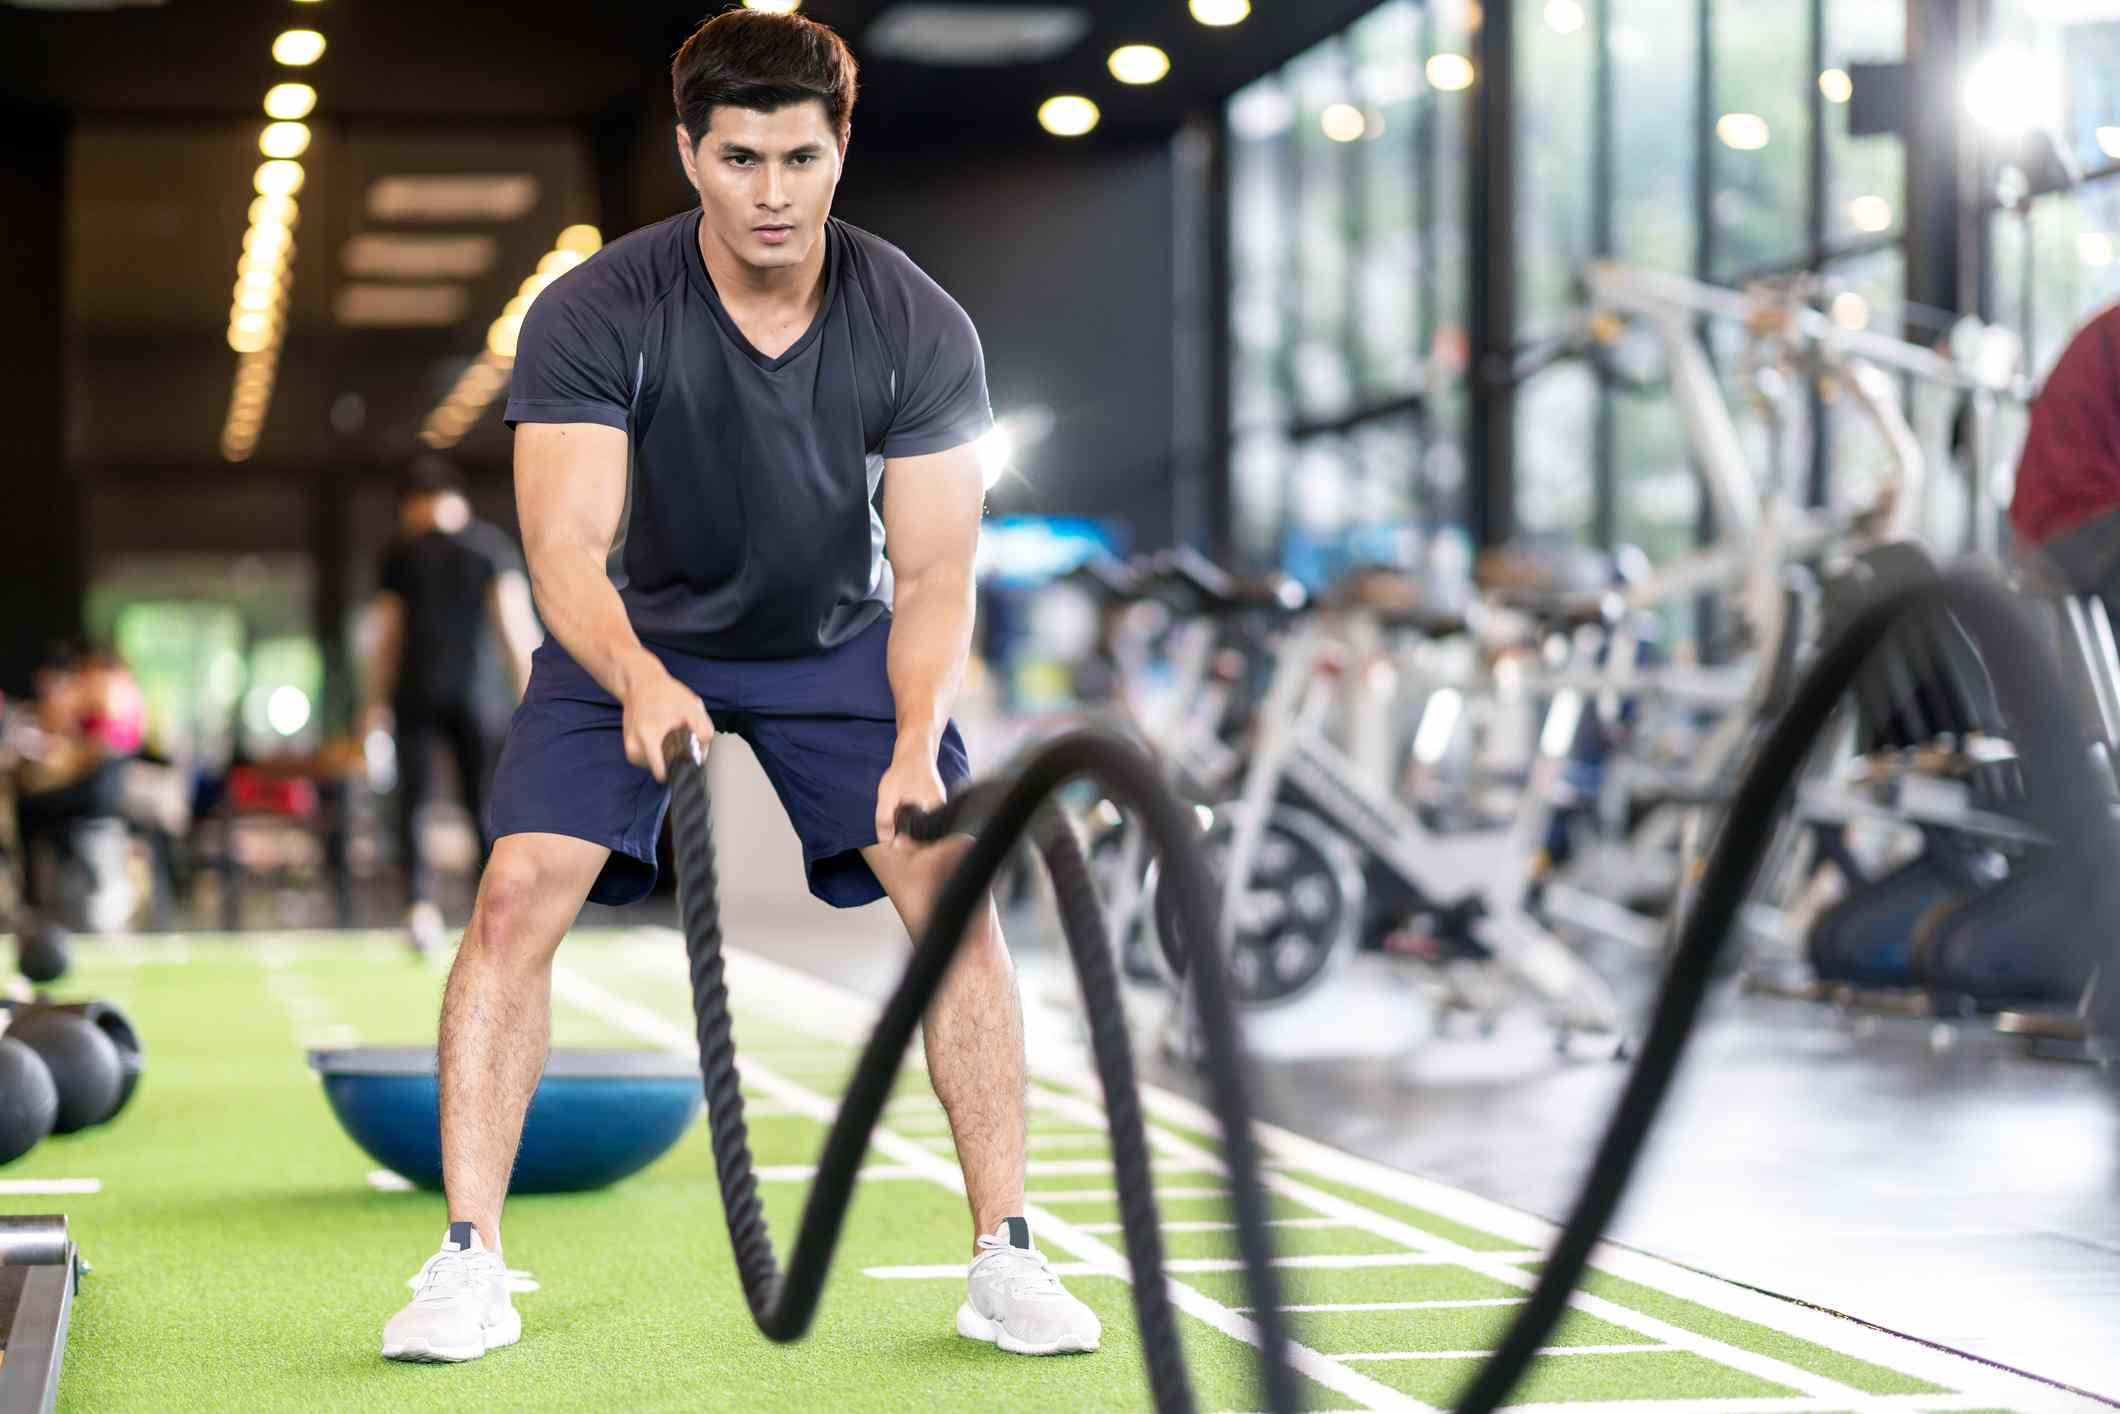 Sporty asian man exercising with battle ropes at the gym on green floor. Strong male determine with her indoor workout for stamina and building muscular body. Athlete battle rope workout concept.